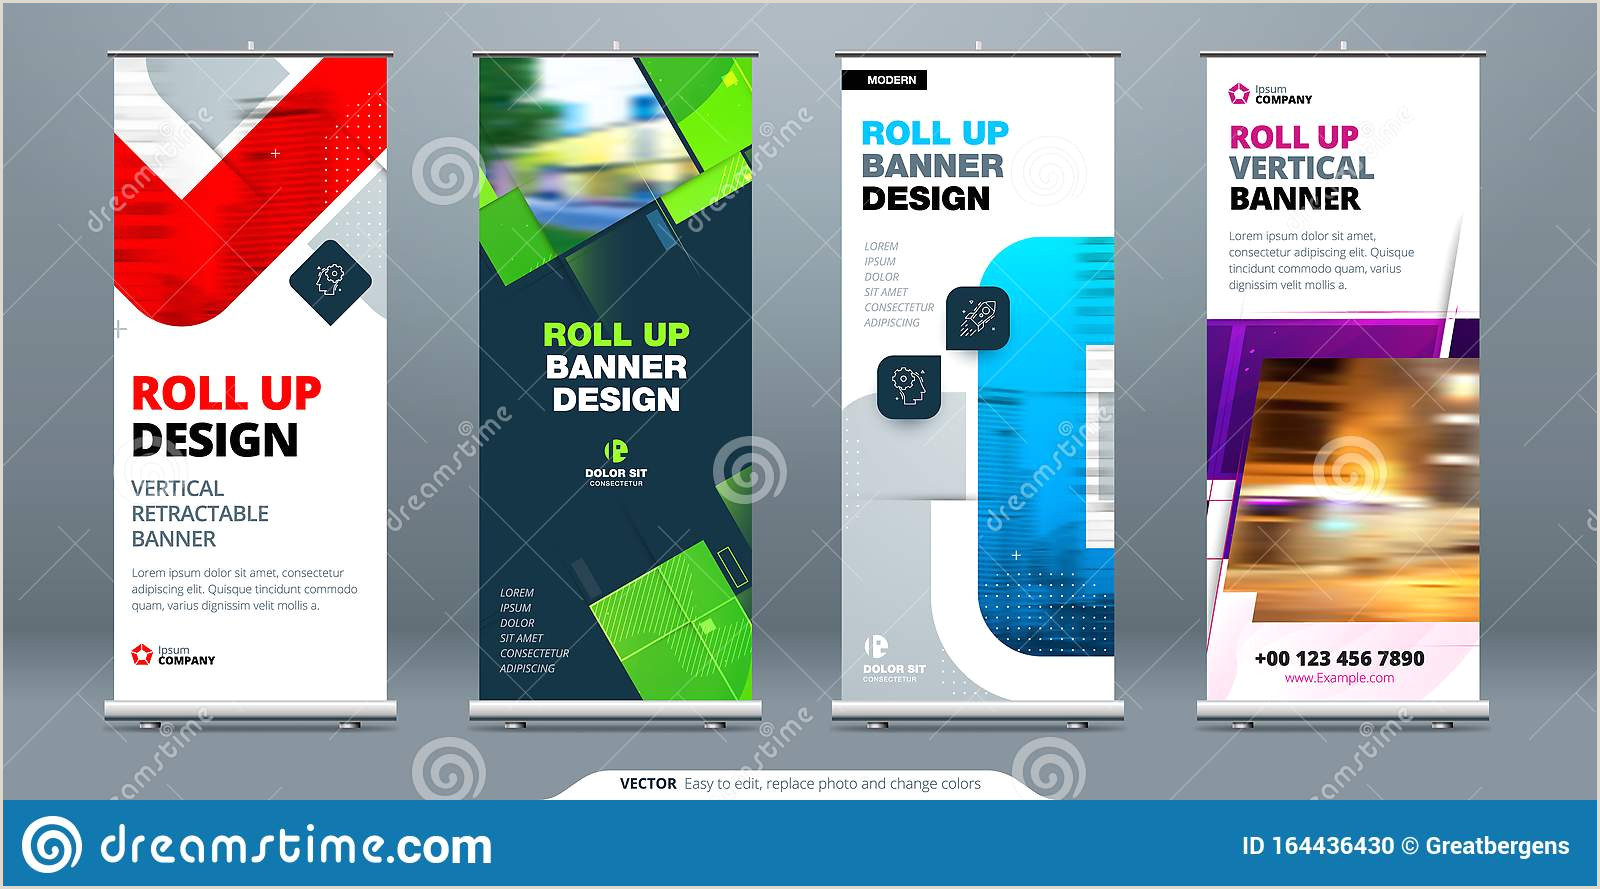 Retractable Hand Banners Banner Retractable Stock Illustrations – 701 Banner